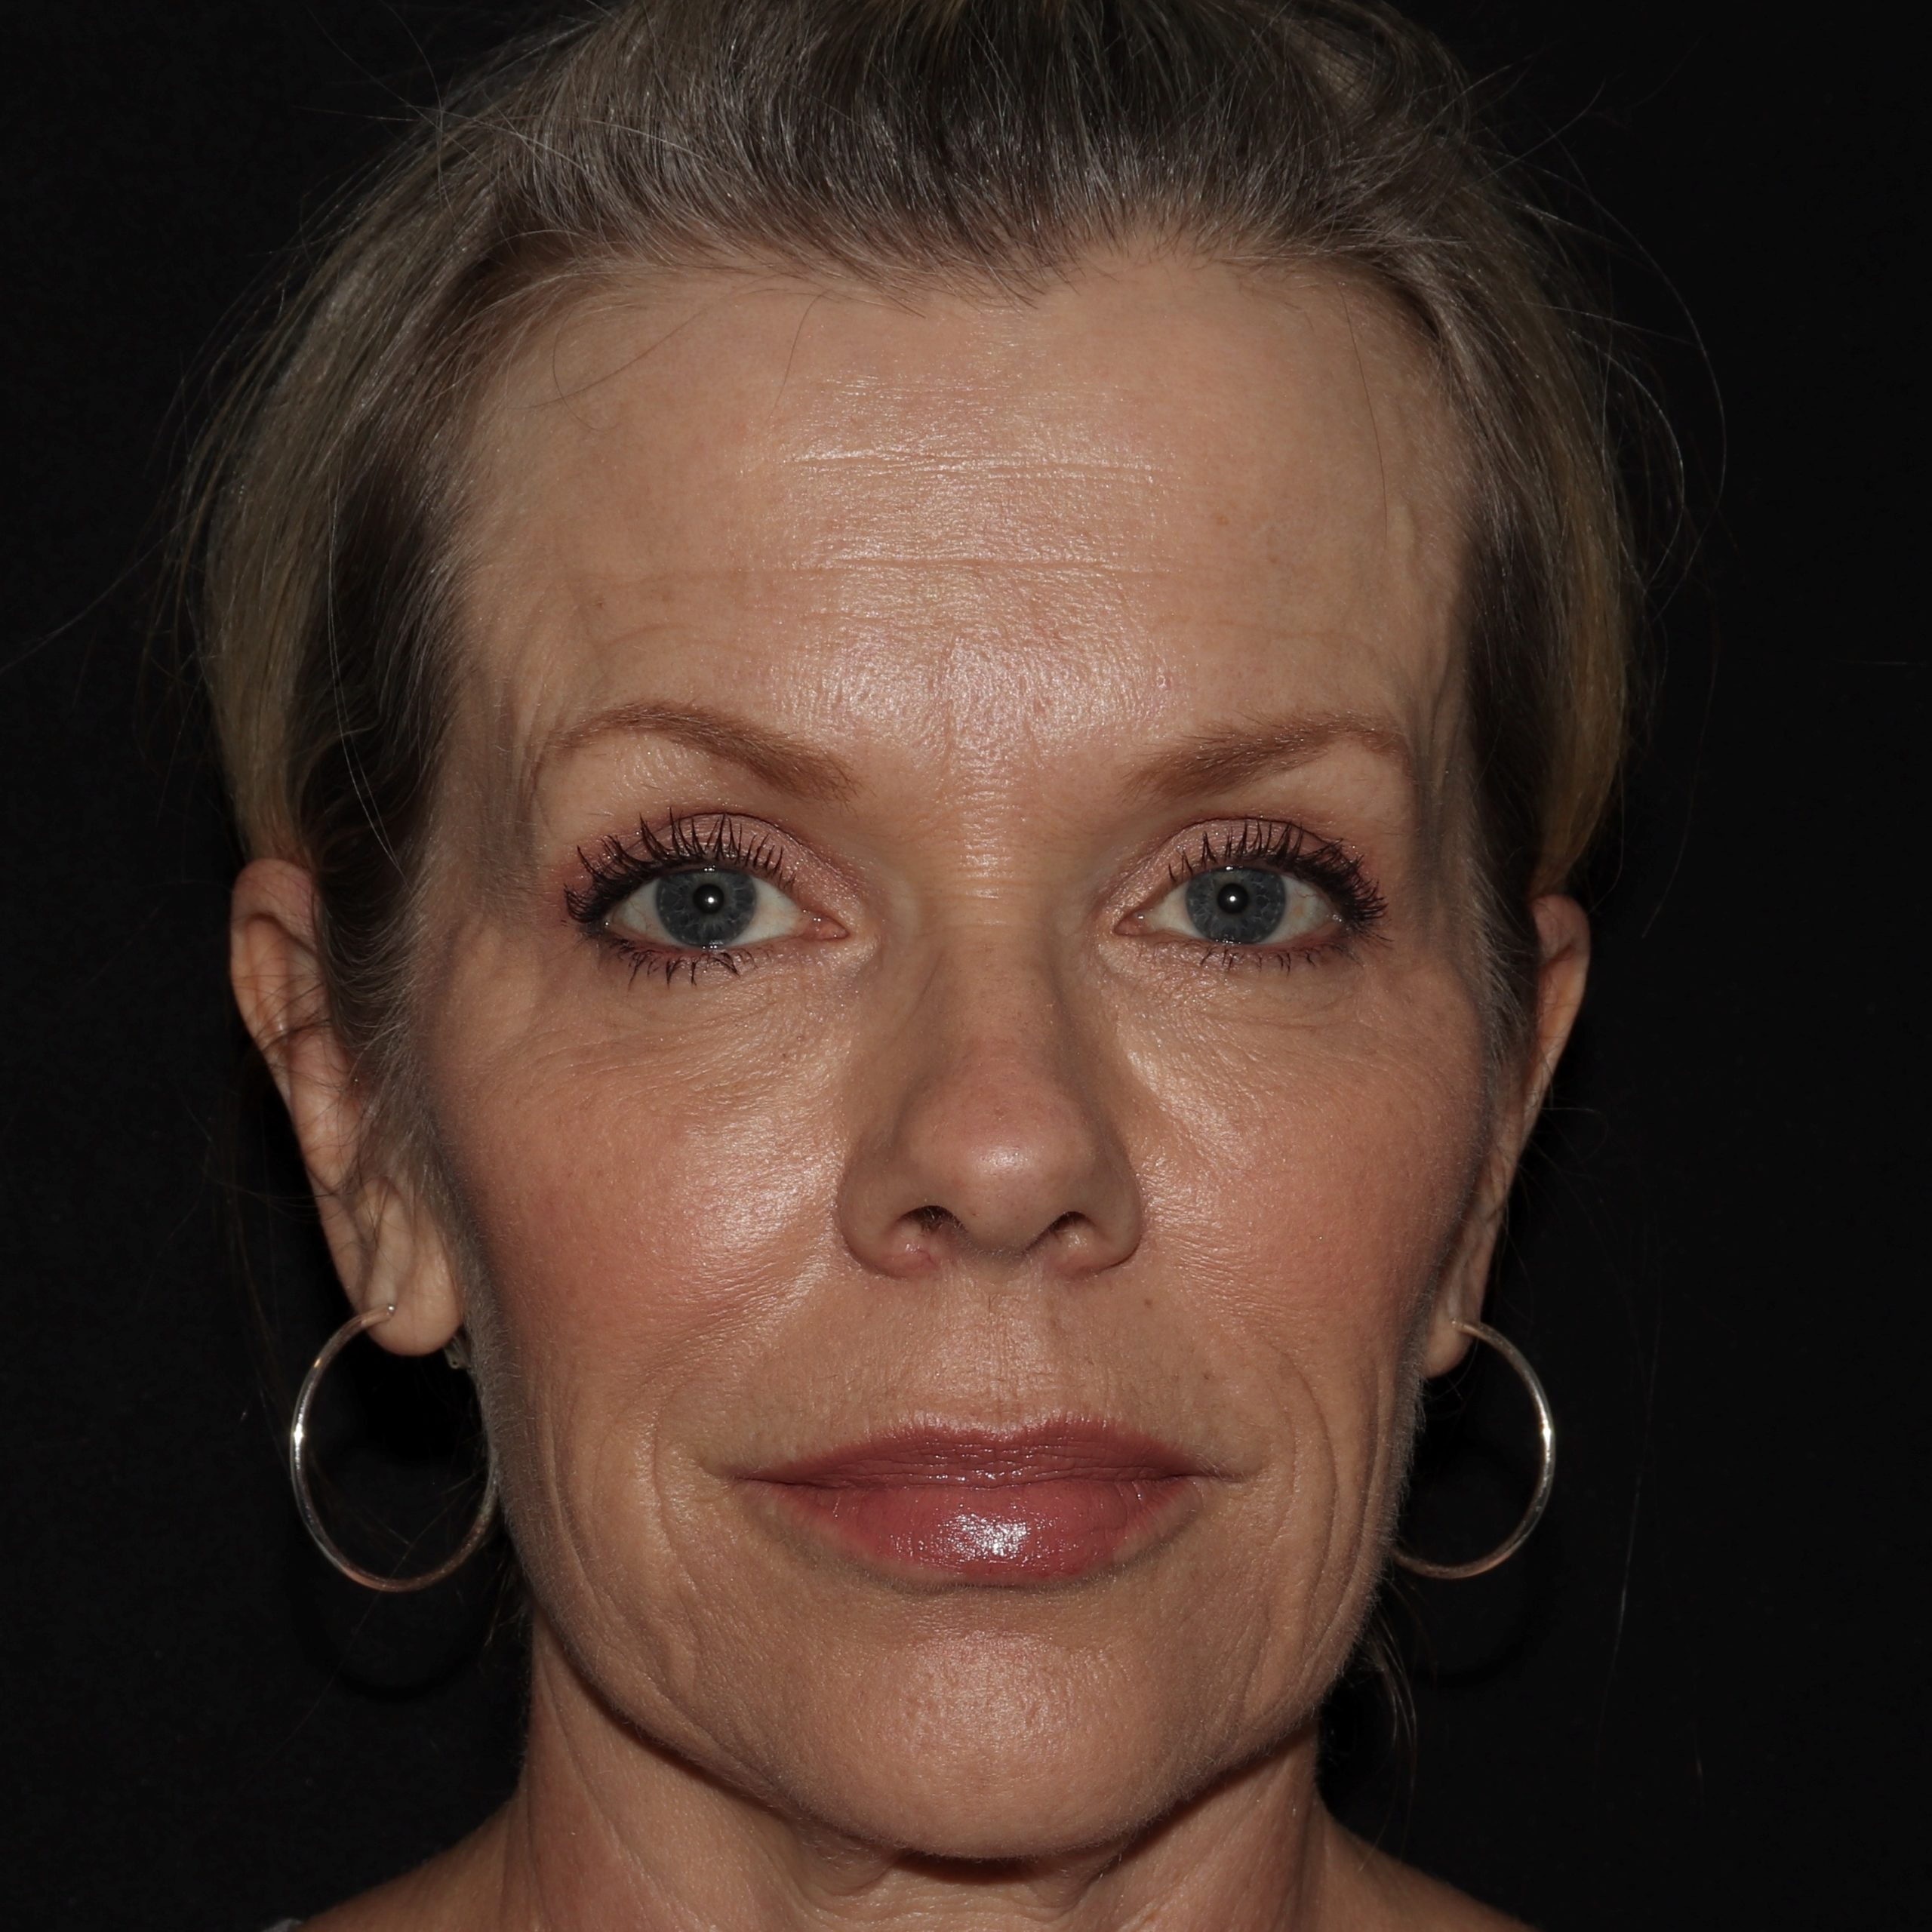 lw botox and filler results